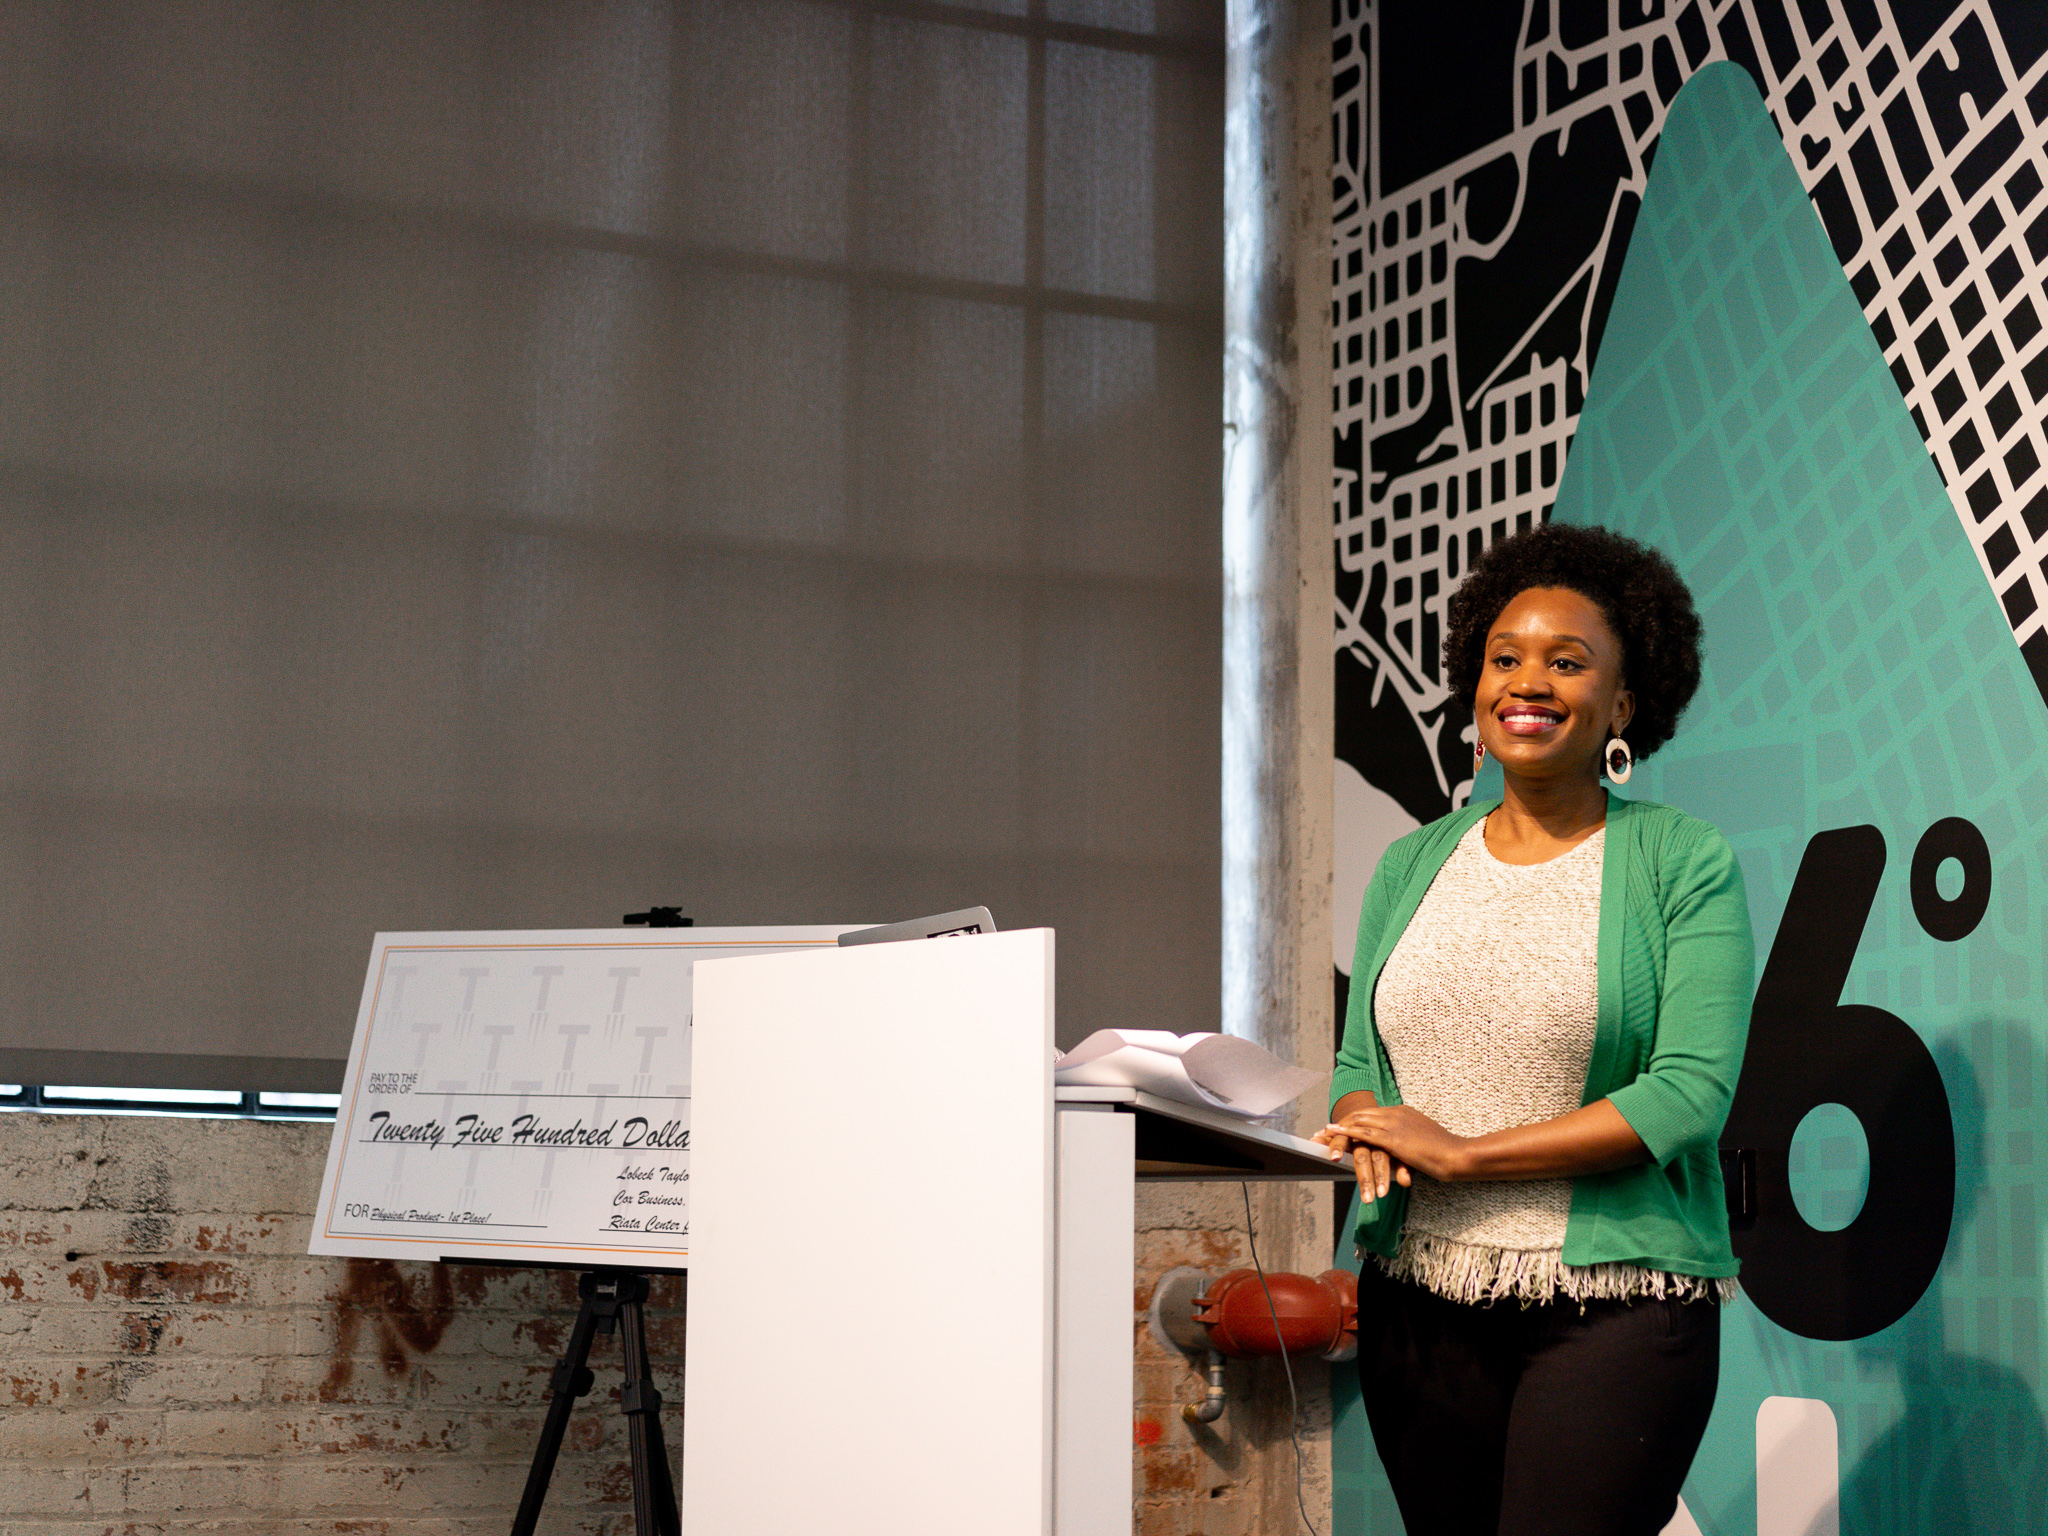 Fallon Laine, founder of Tropical Origins, presents at the Tulsa Startup Series Live Pitch.